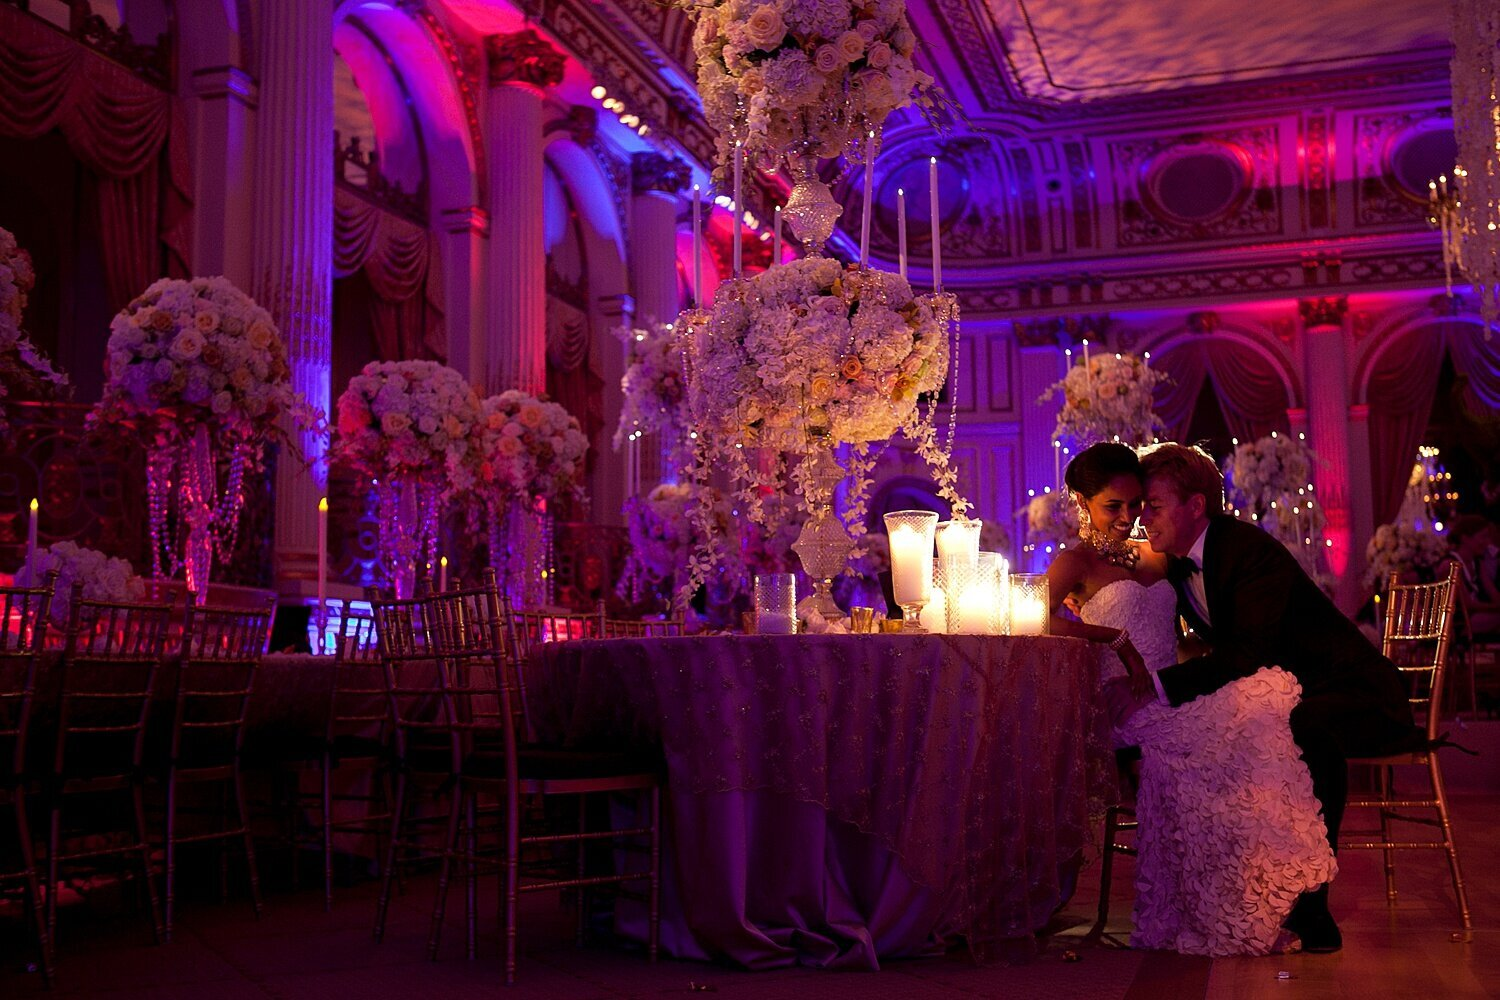 brooklyn-new-york-wedding-photographer_web_0011_WEB